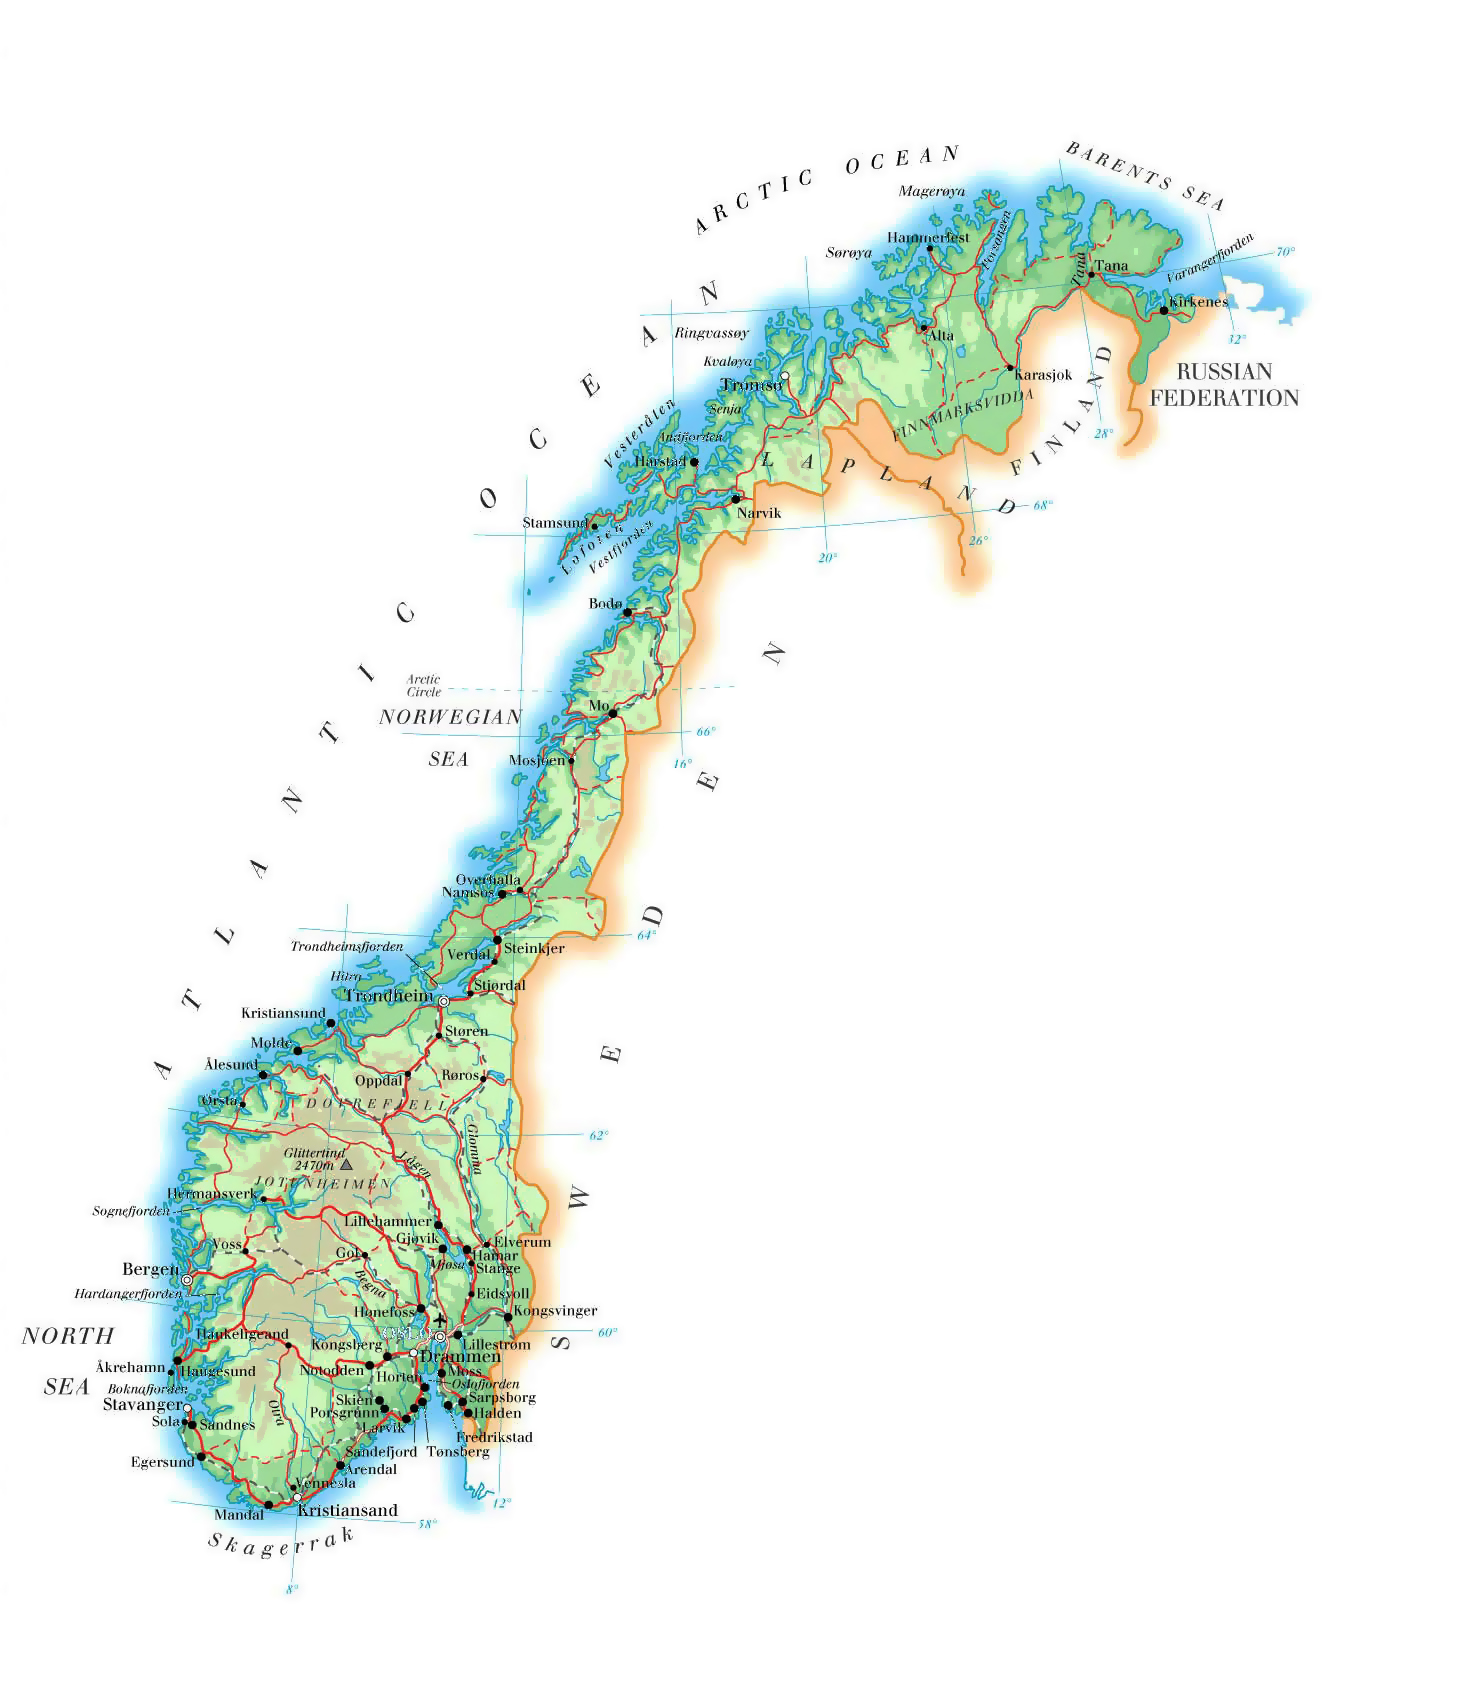 Elevation map of Norway with roads, major cities and ...